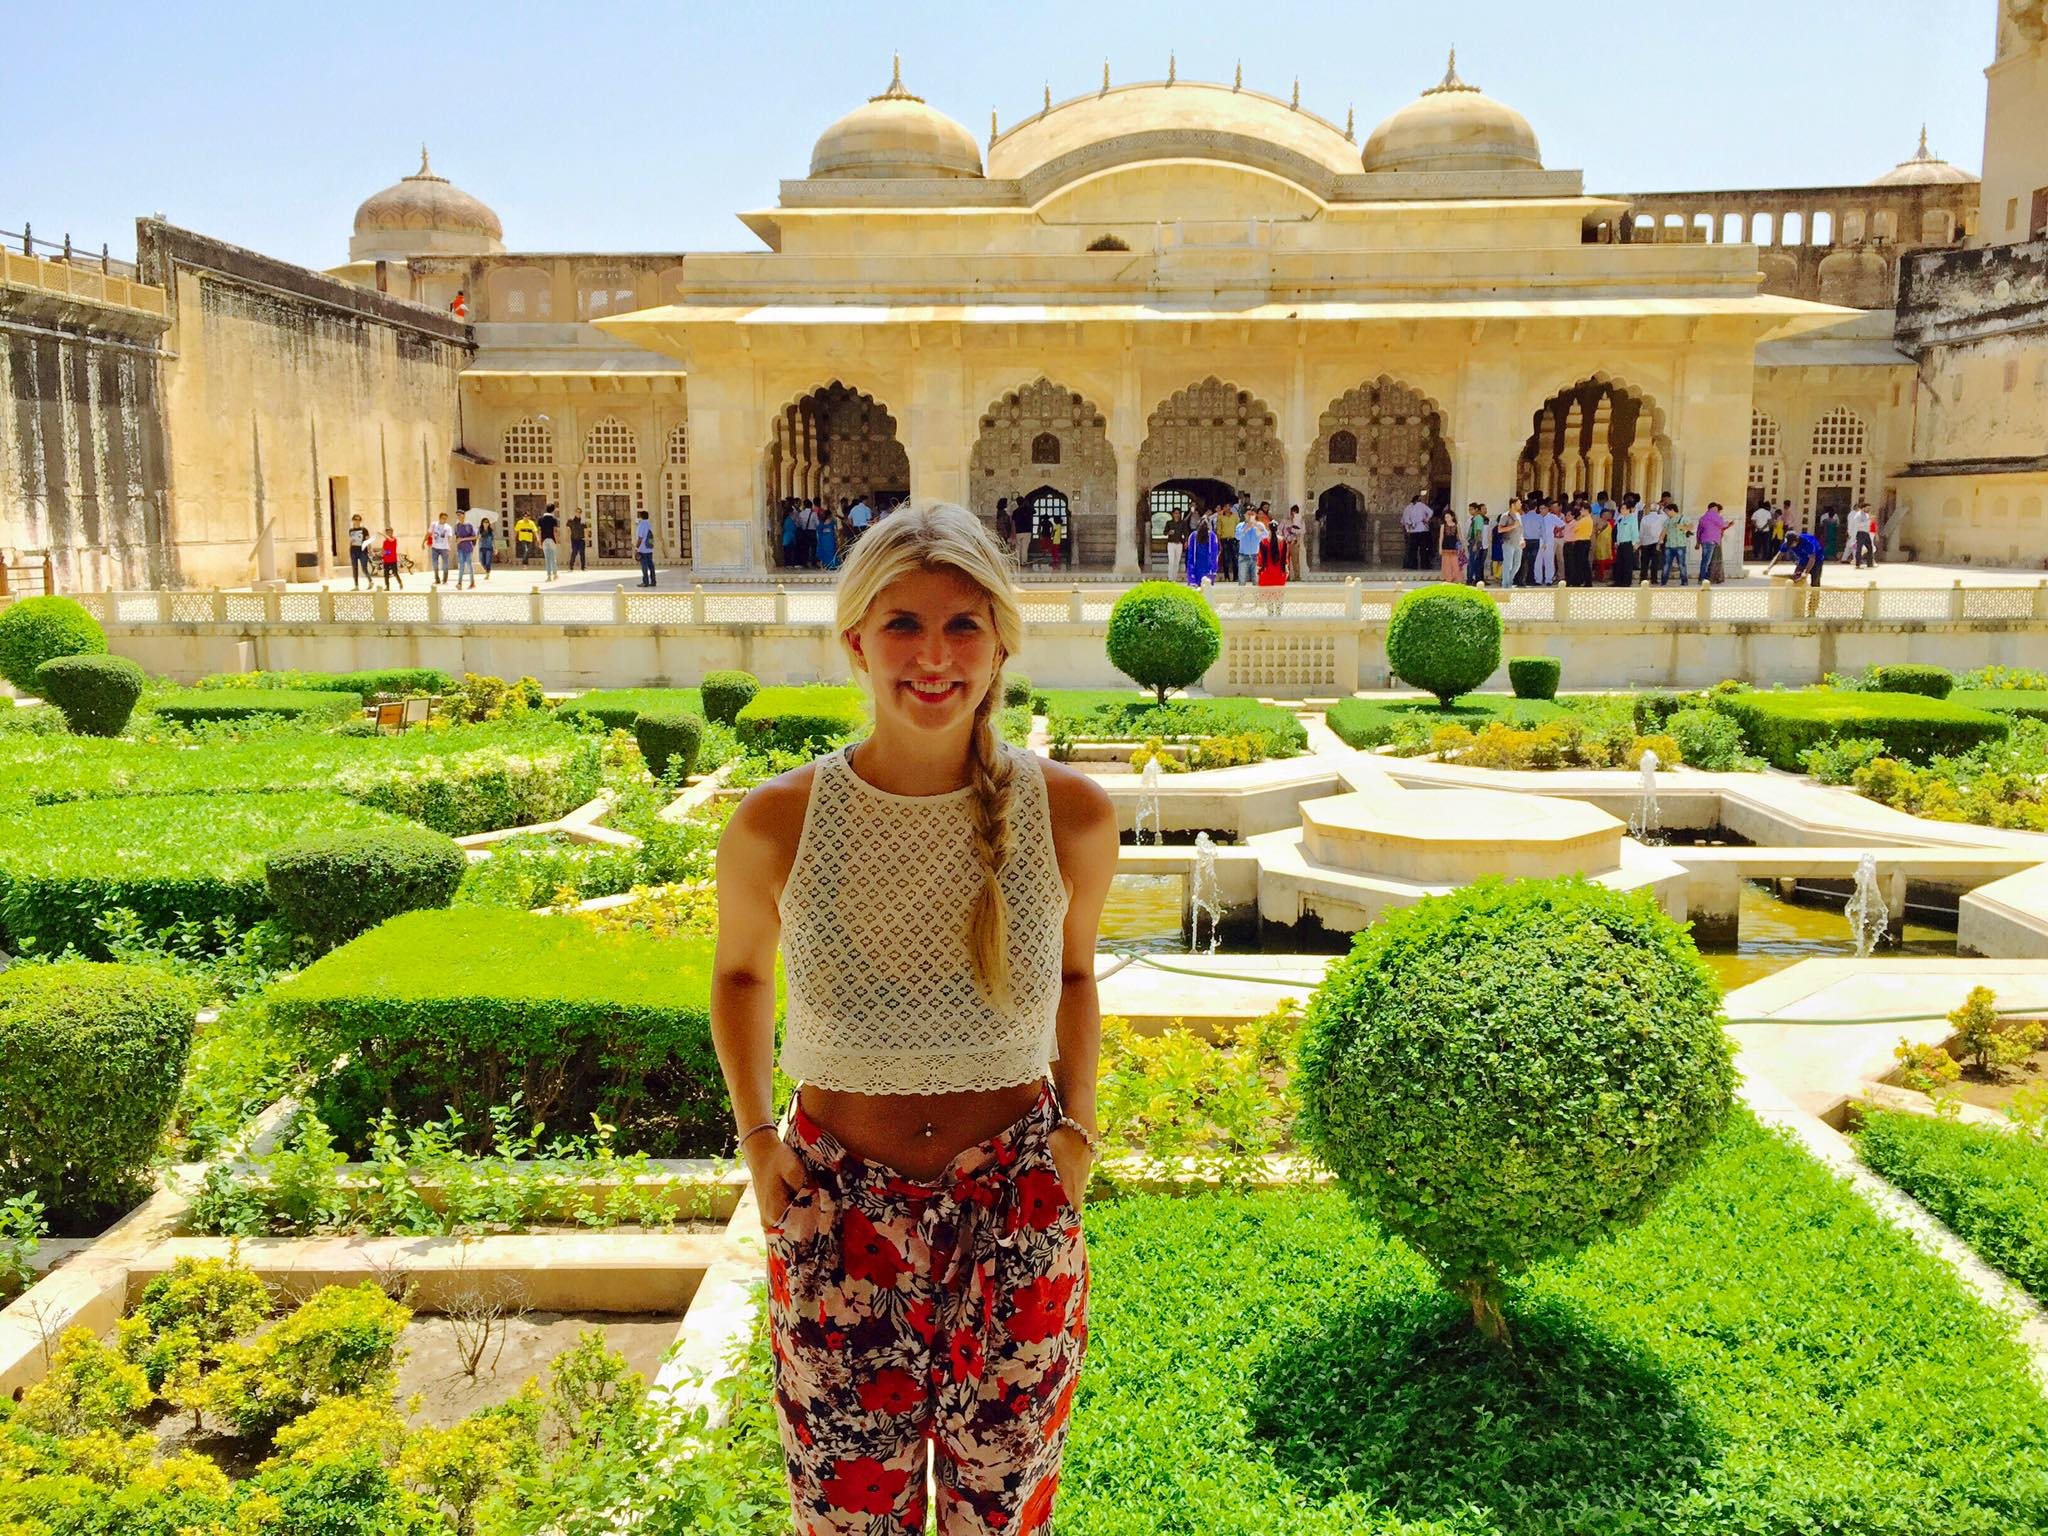 Ali ba ba pants and a crop top while sightseeing during the day at the City Palace